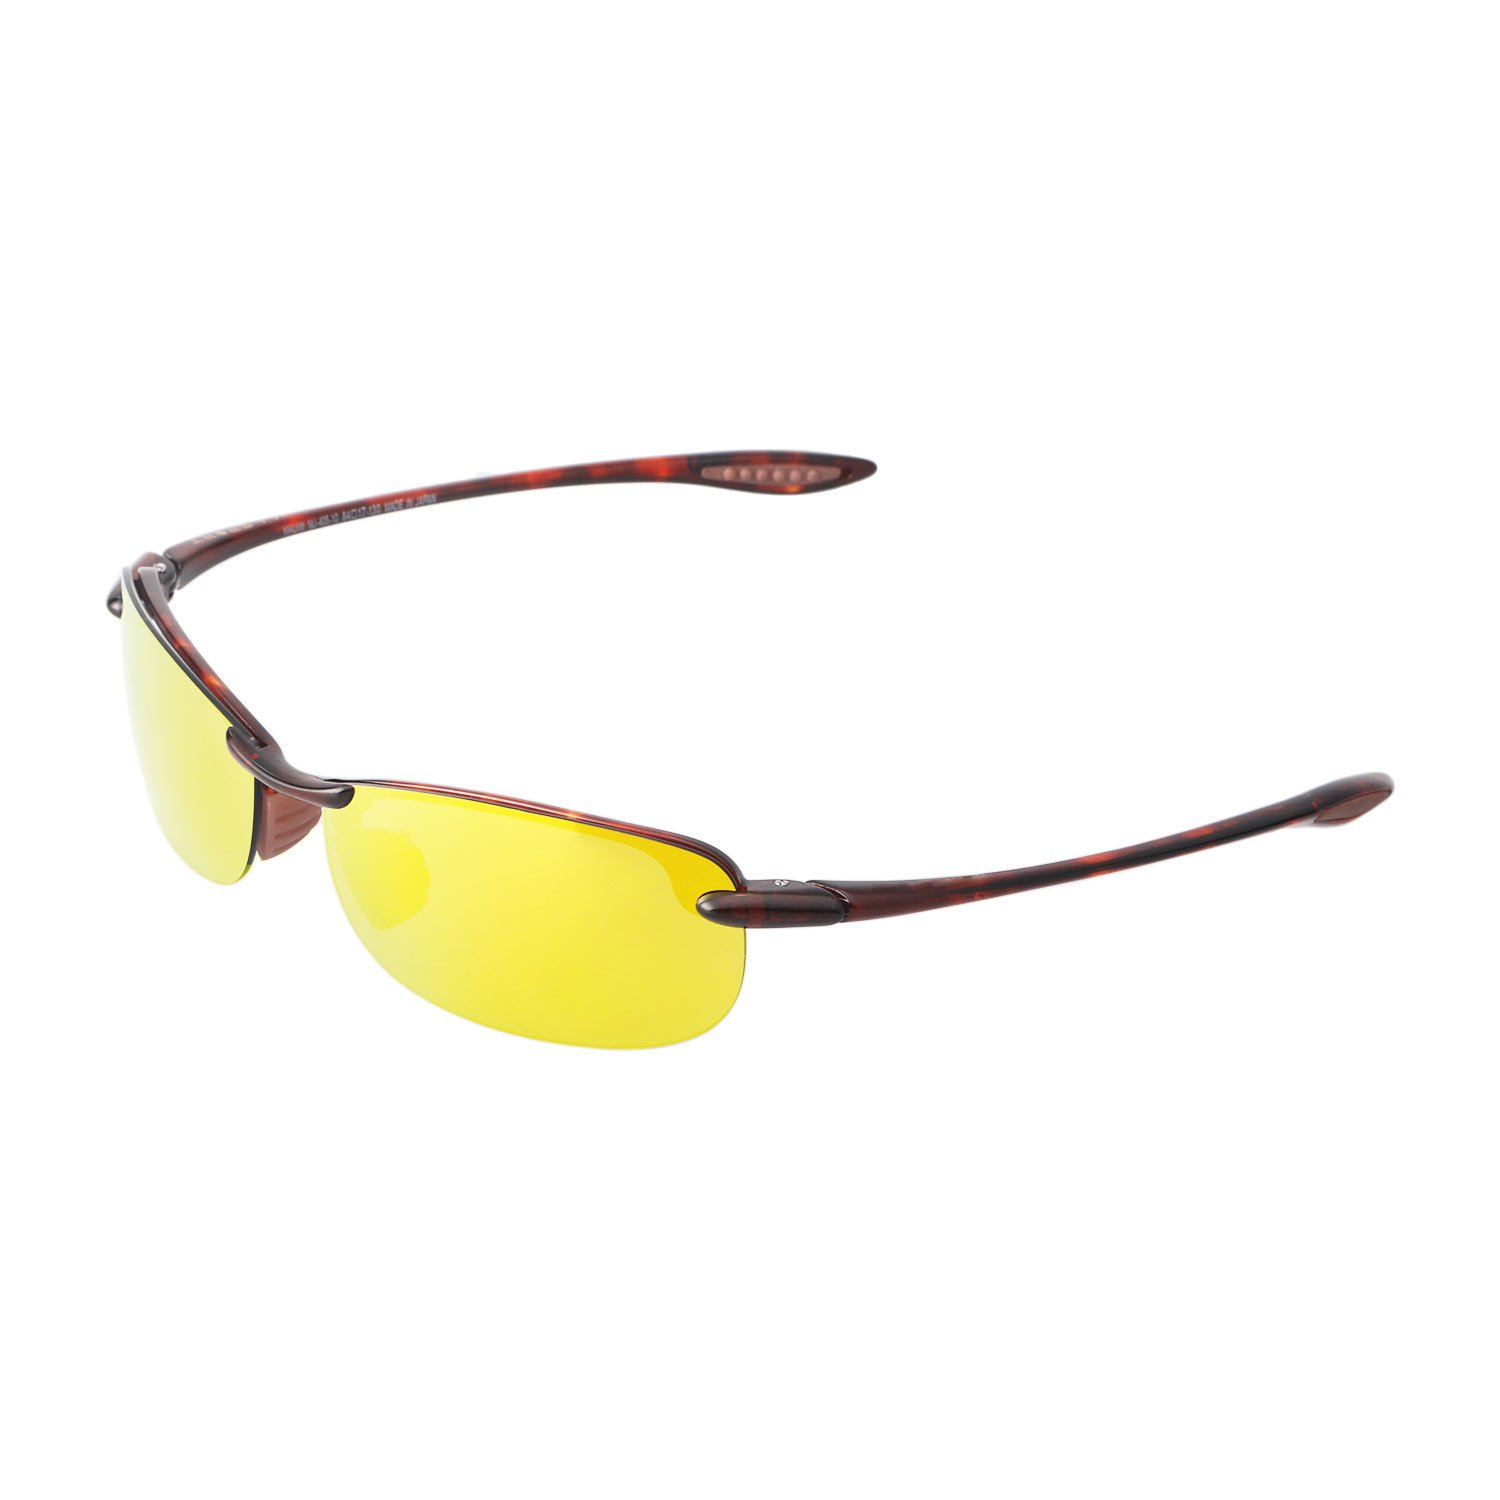 fcb4c3a0dd54d Walleva Replacement Lenses for Maui Jim Makaha Sunglasses - Multiple  Options Available (24K Gold - Polarized) at Amazon Men s Clothing store